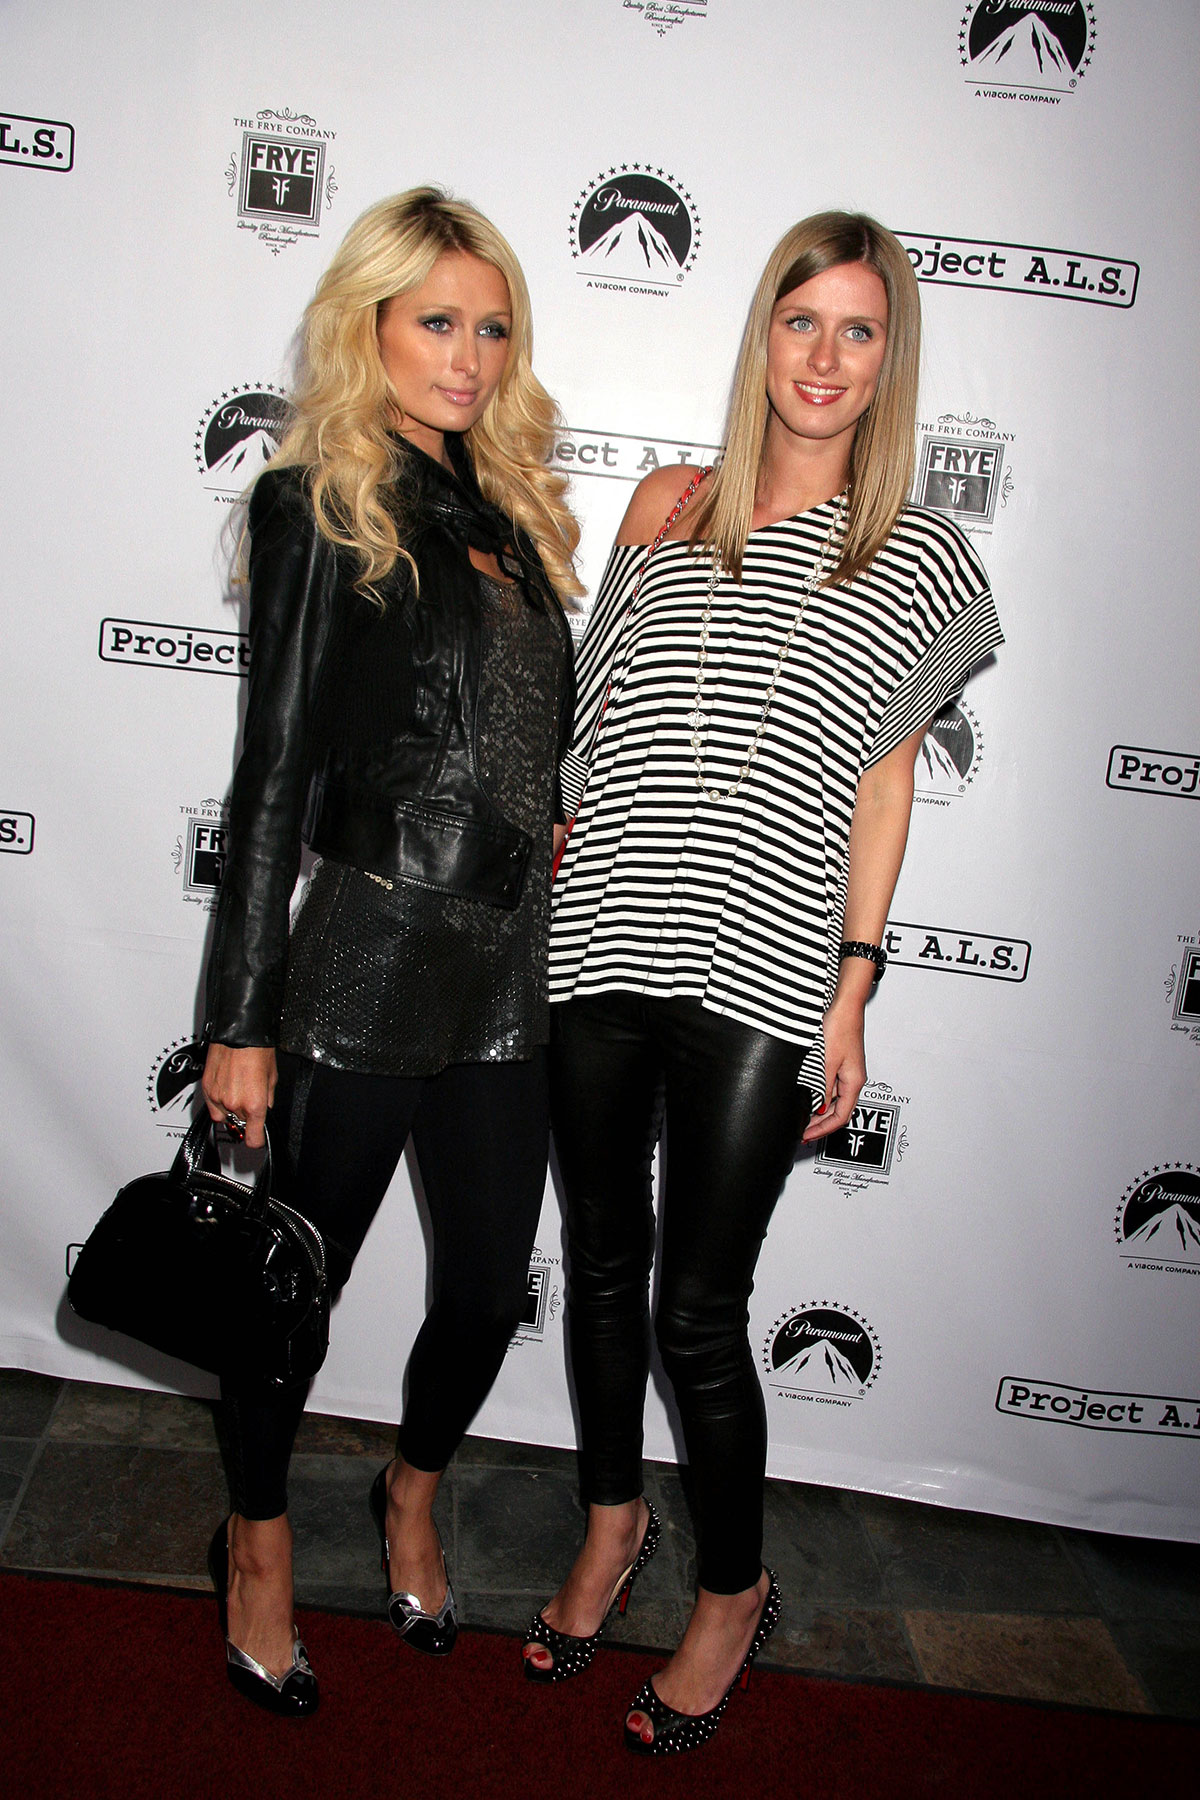 Nicky Hilton arrives at the Project ALS LA Benefit